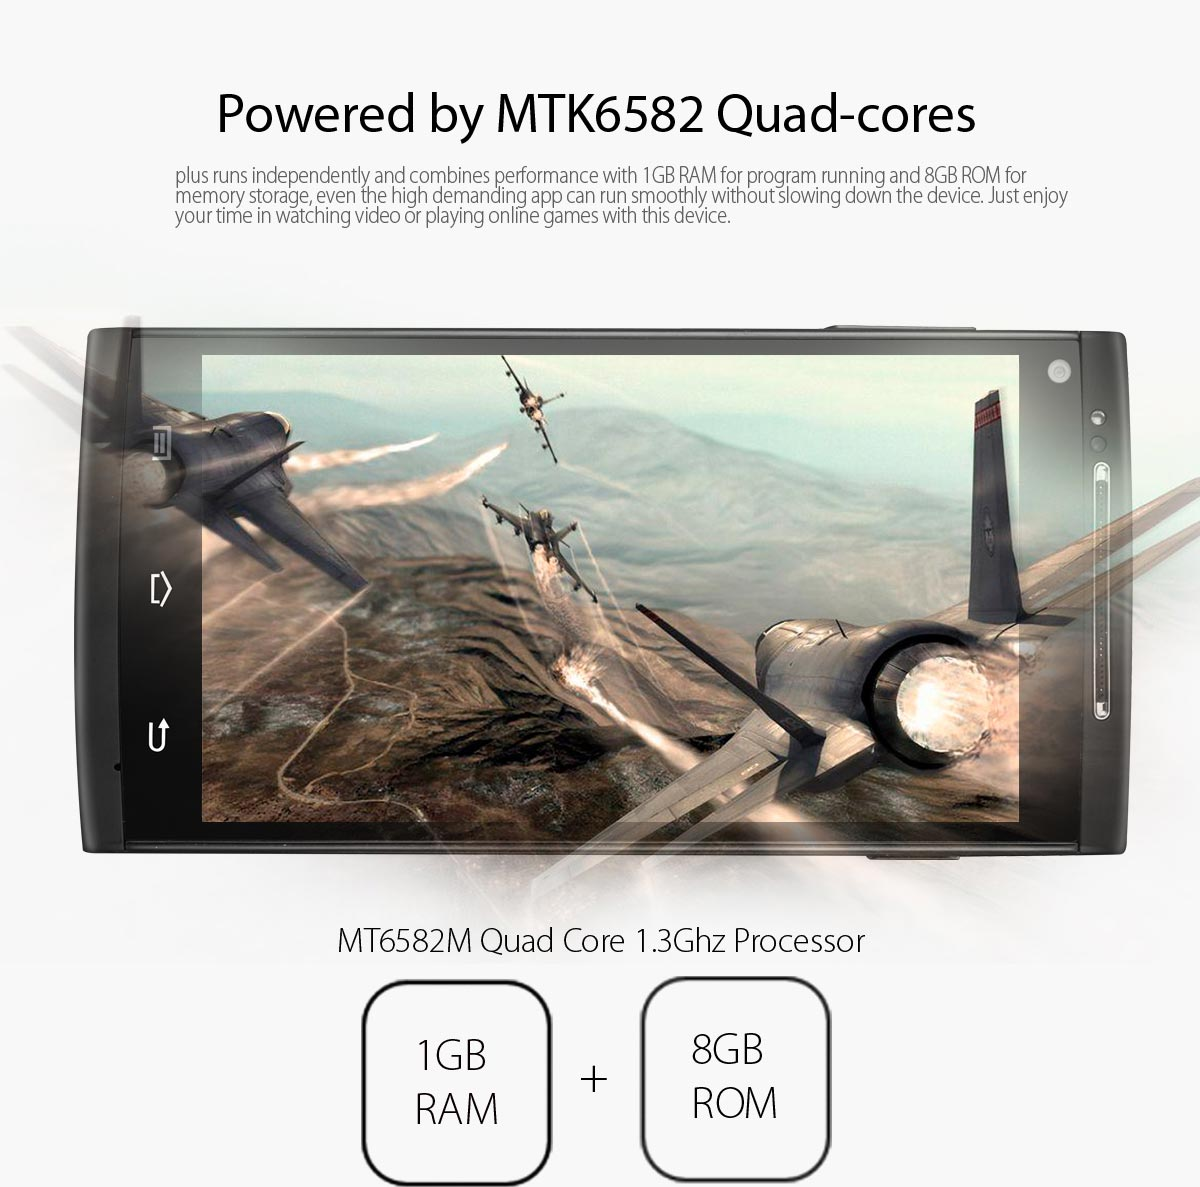 blackview jk900 with MTK6582 Quad core 1.3GHz